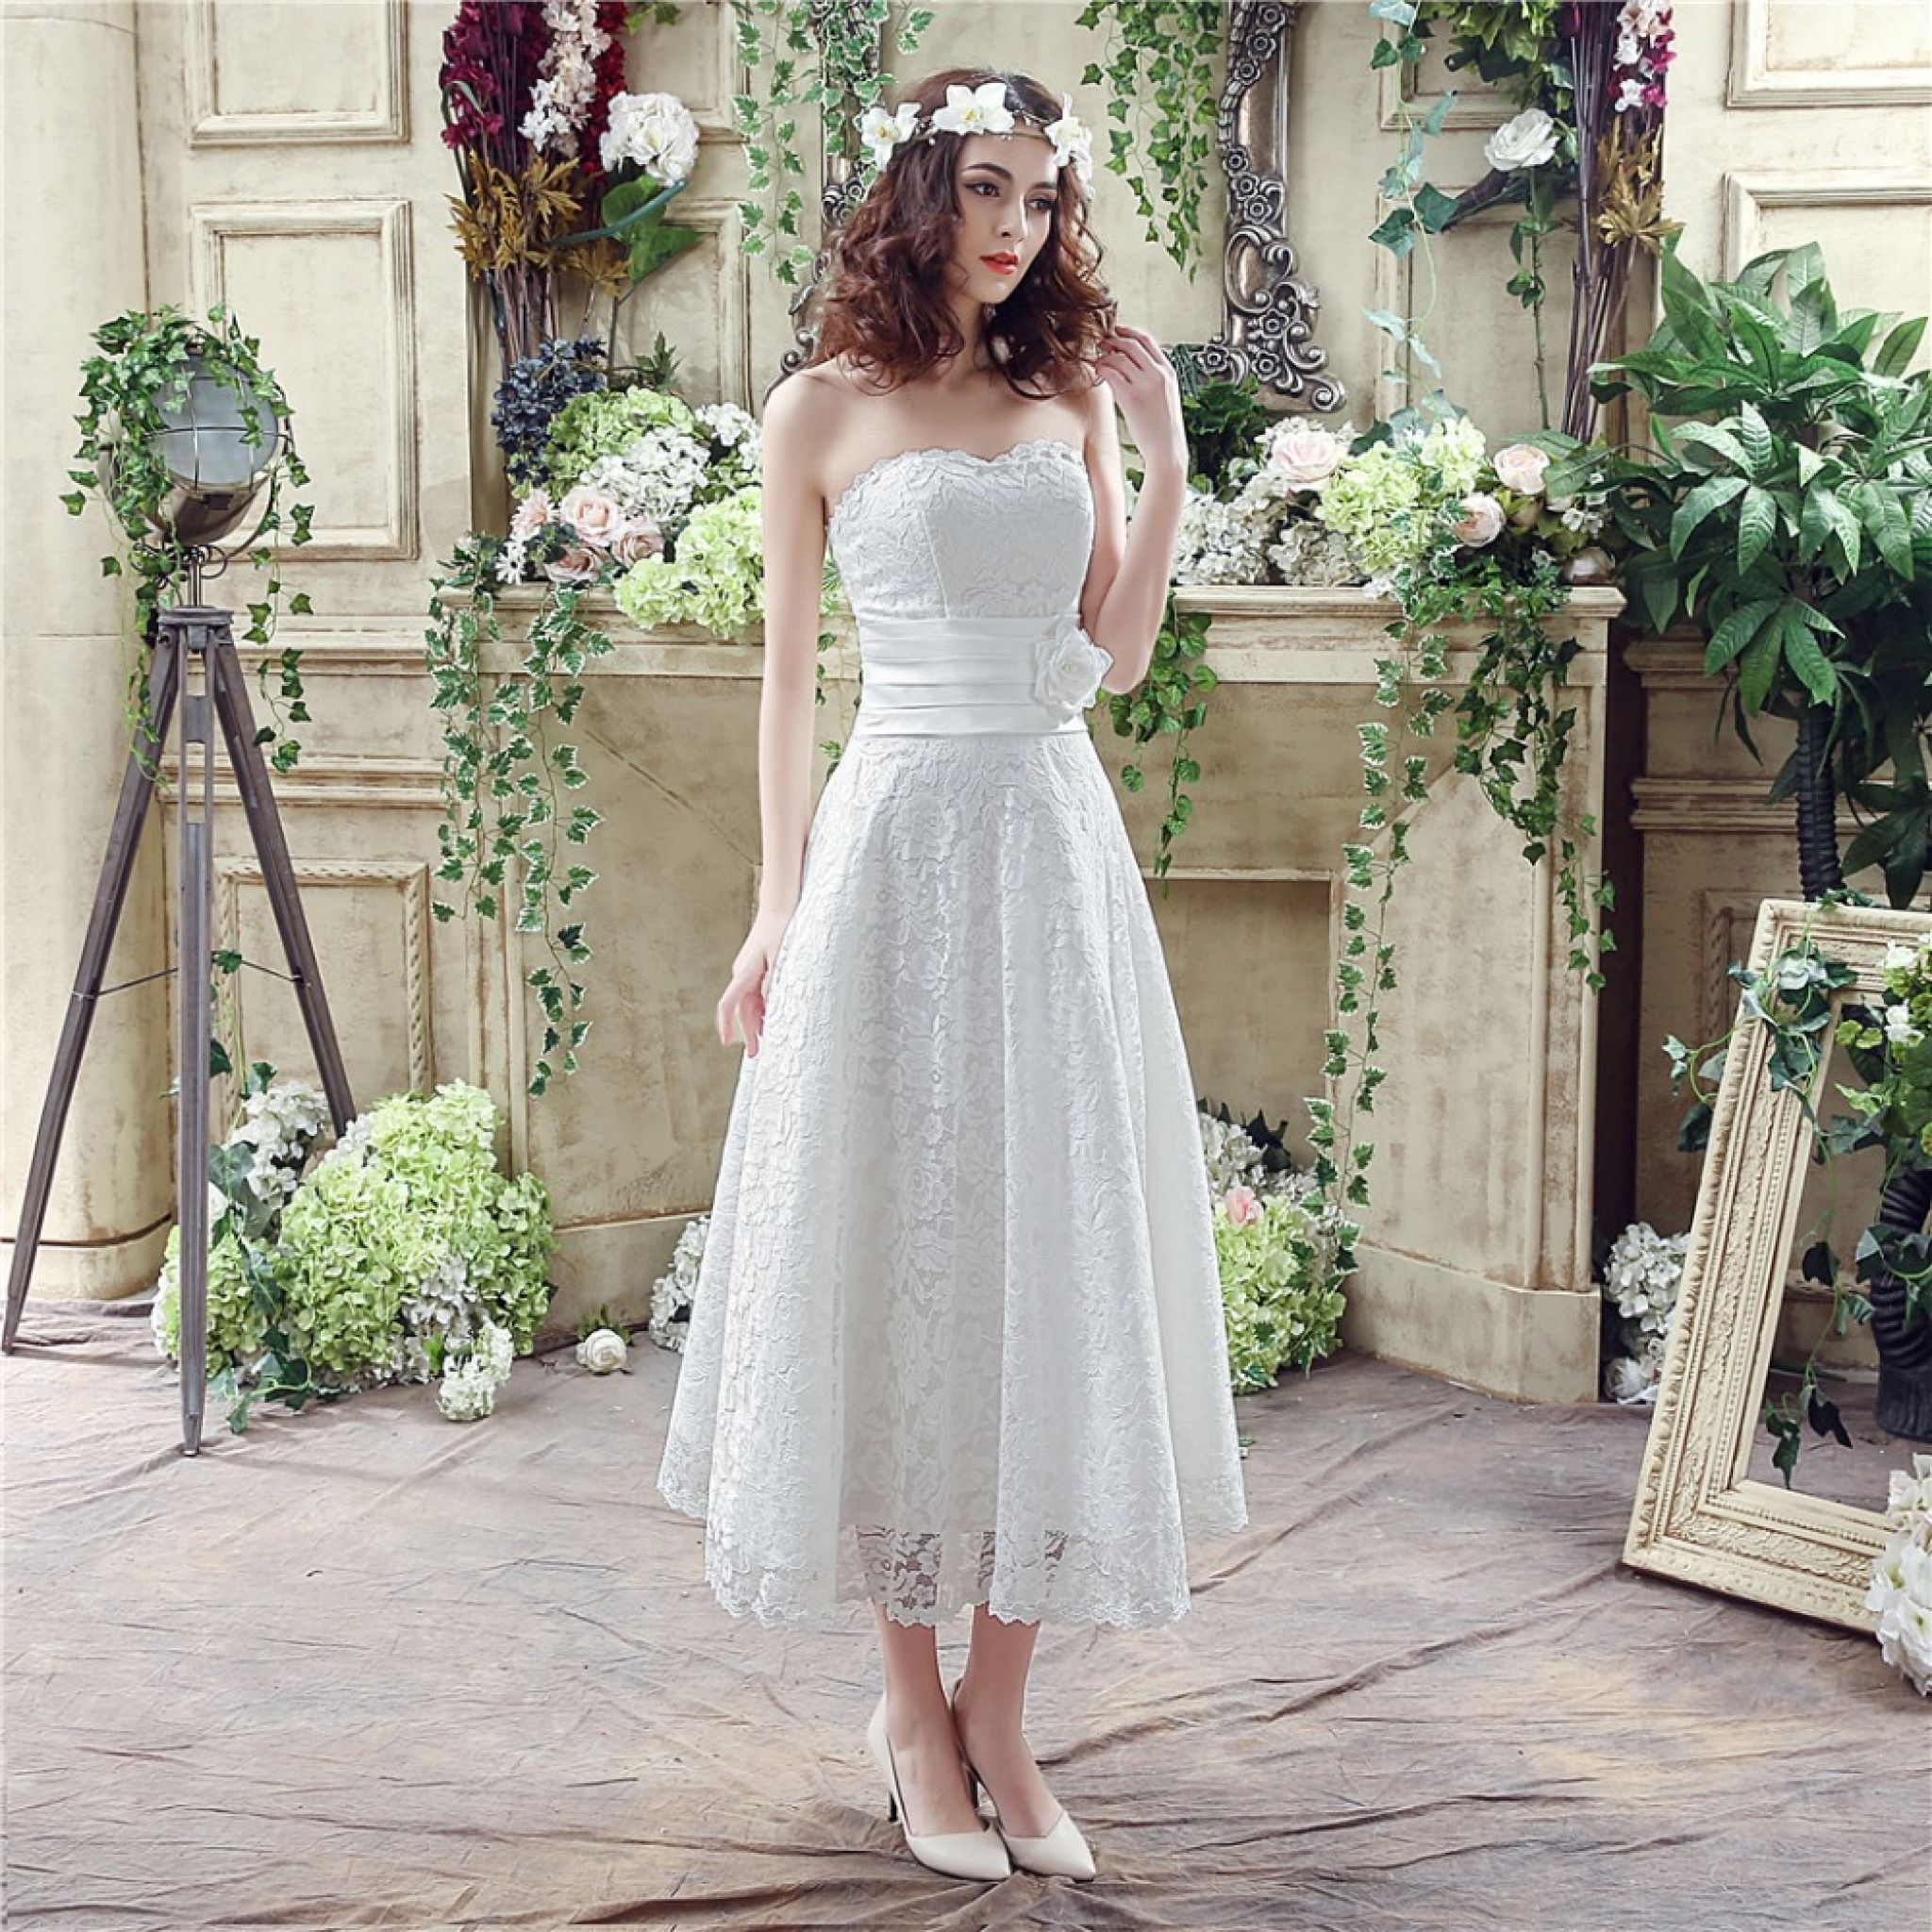 simple western wedding dresses - dress for country wedding guest ...